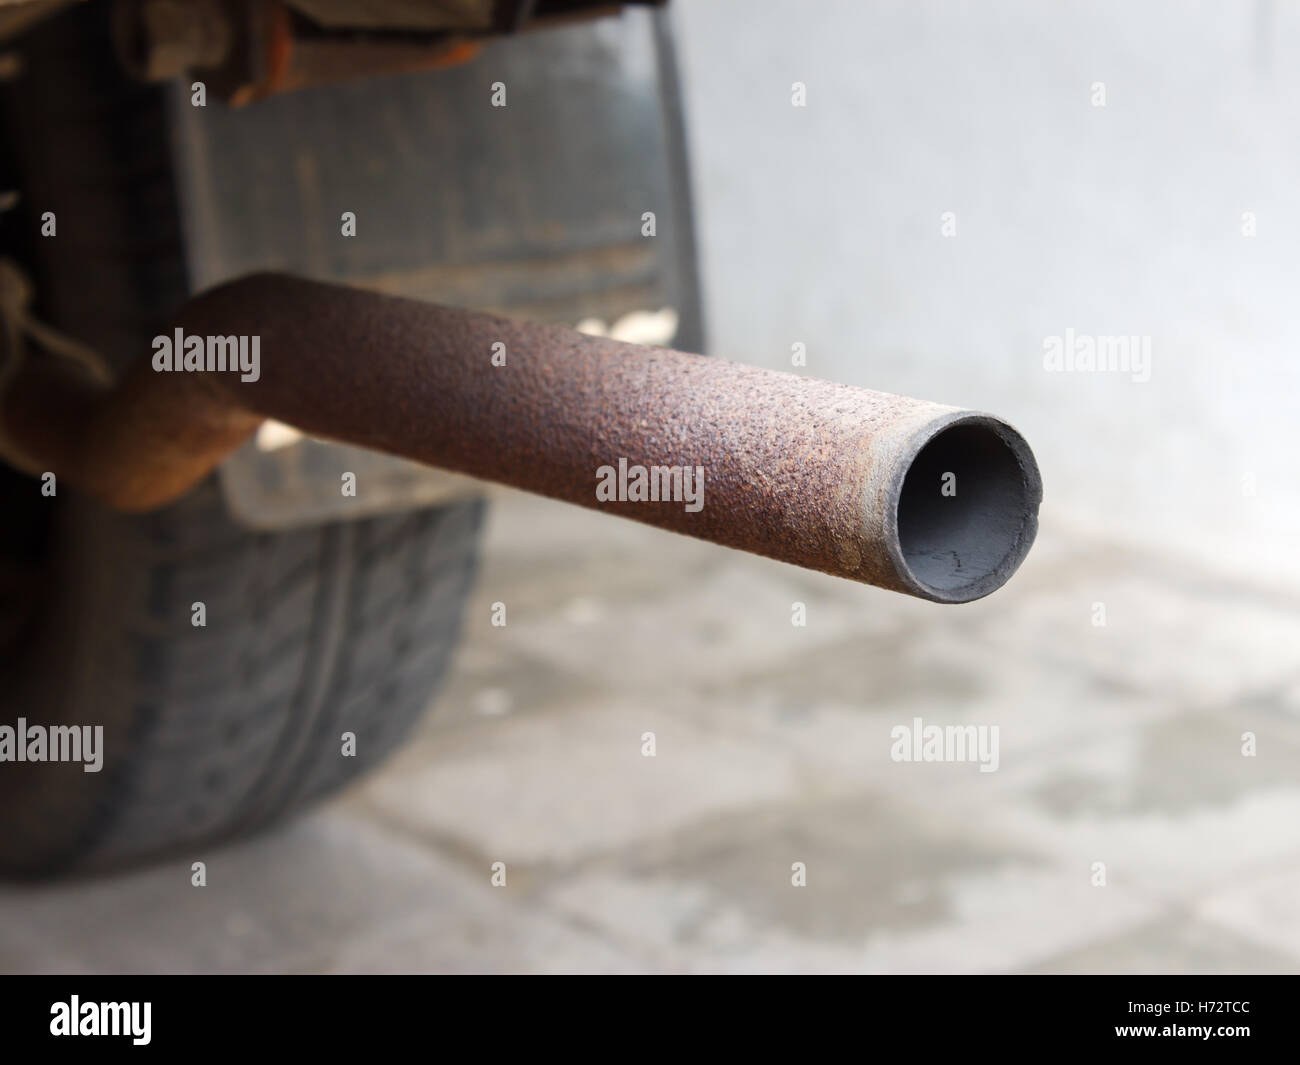 Standard car exhaust pipe (muffler) that used to remove smoke form the engine and as an engine silencer. & Standard car exhaust pipe (muffler) that used to remove smoke form ...